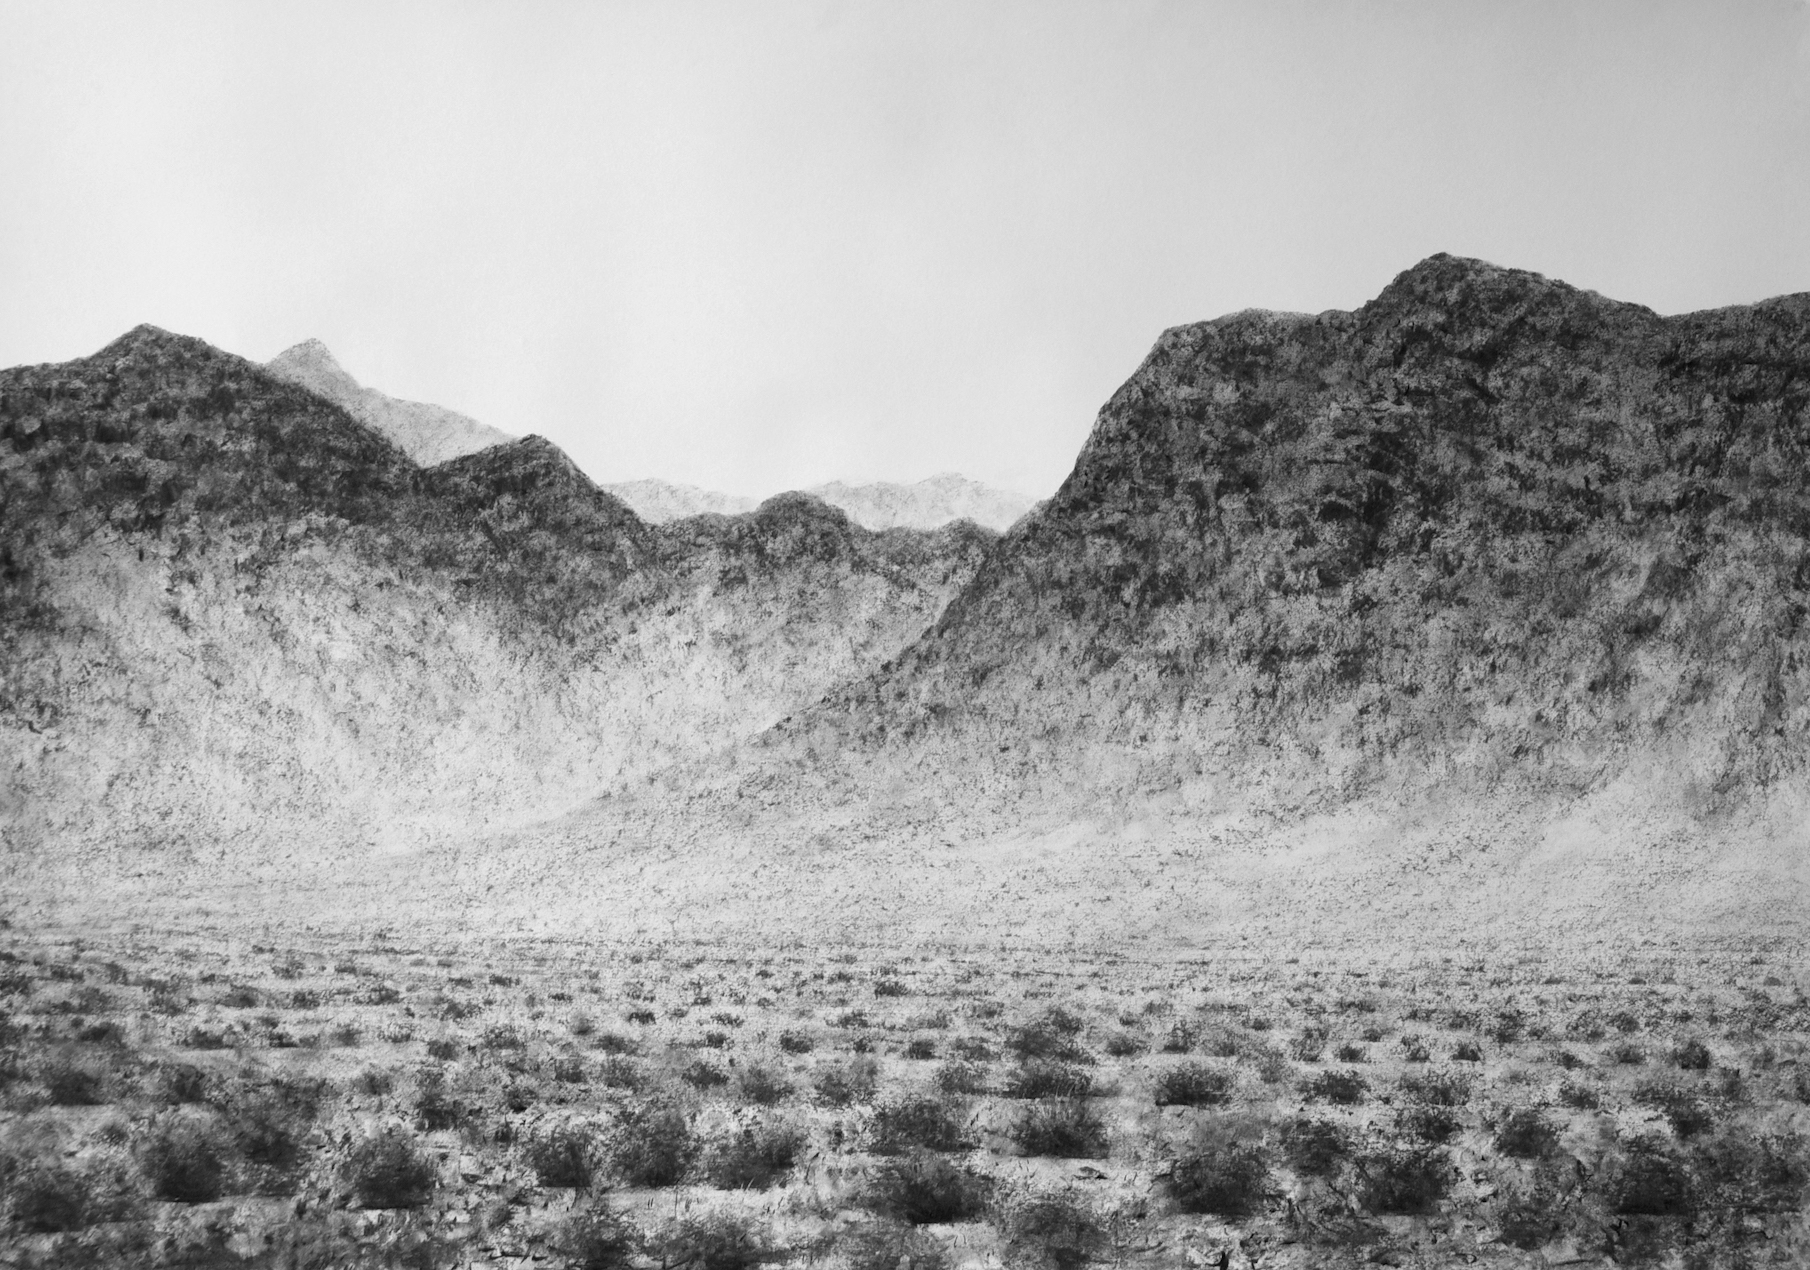 Darvish Fakhr, Desert 2, 100 x 150cm, exhibitions end April